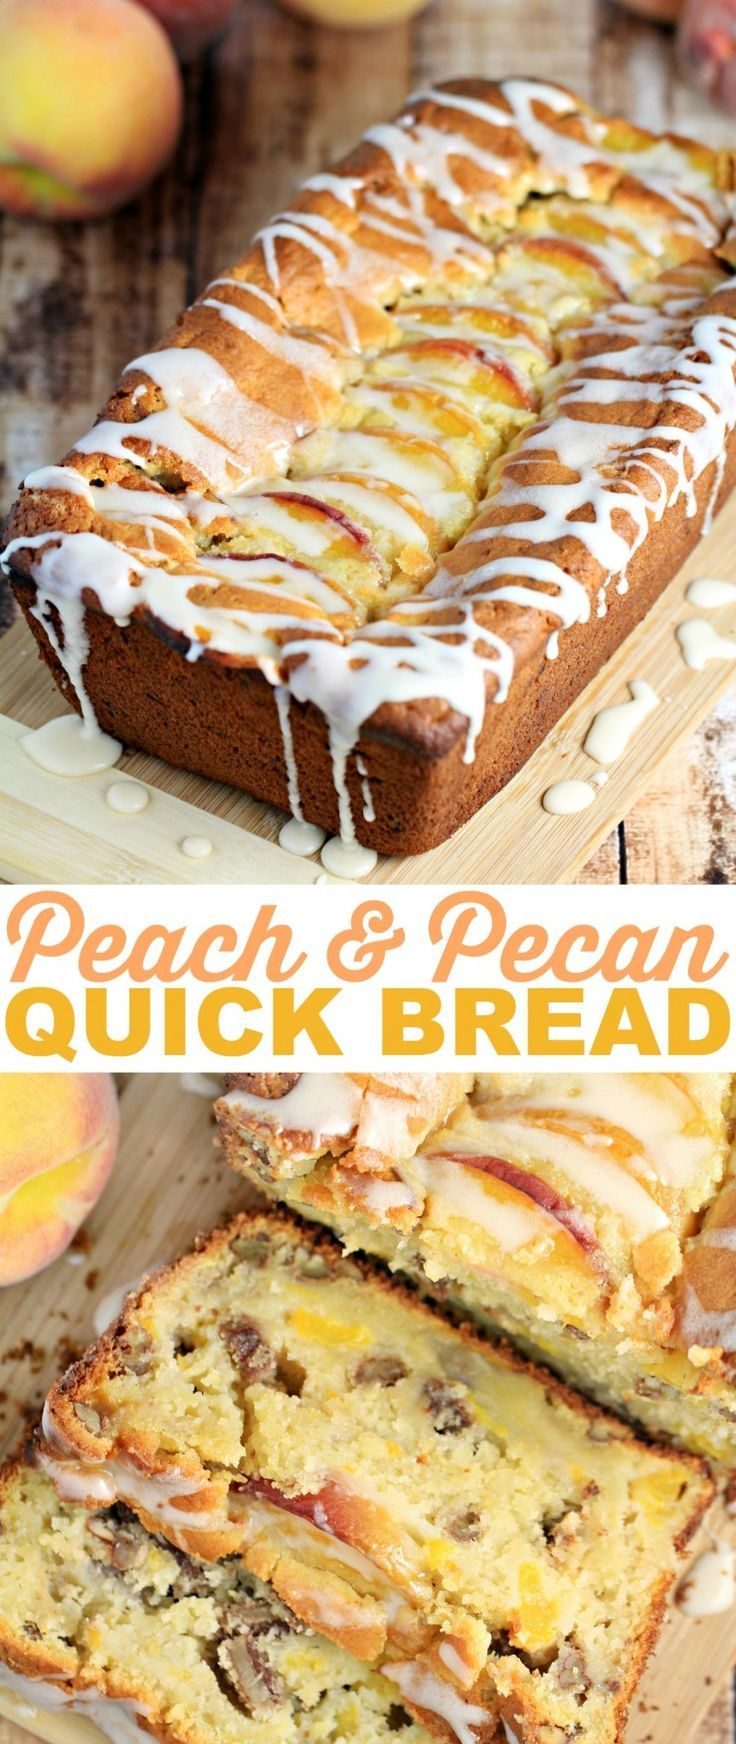 This Pecan & Peach Quick Bread is a family favourite Recipe. This Pecan & Peach loaf is wonderful after dinner with some coffee but equally…